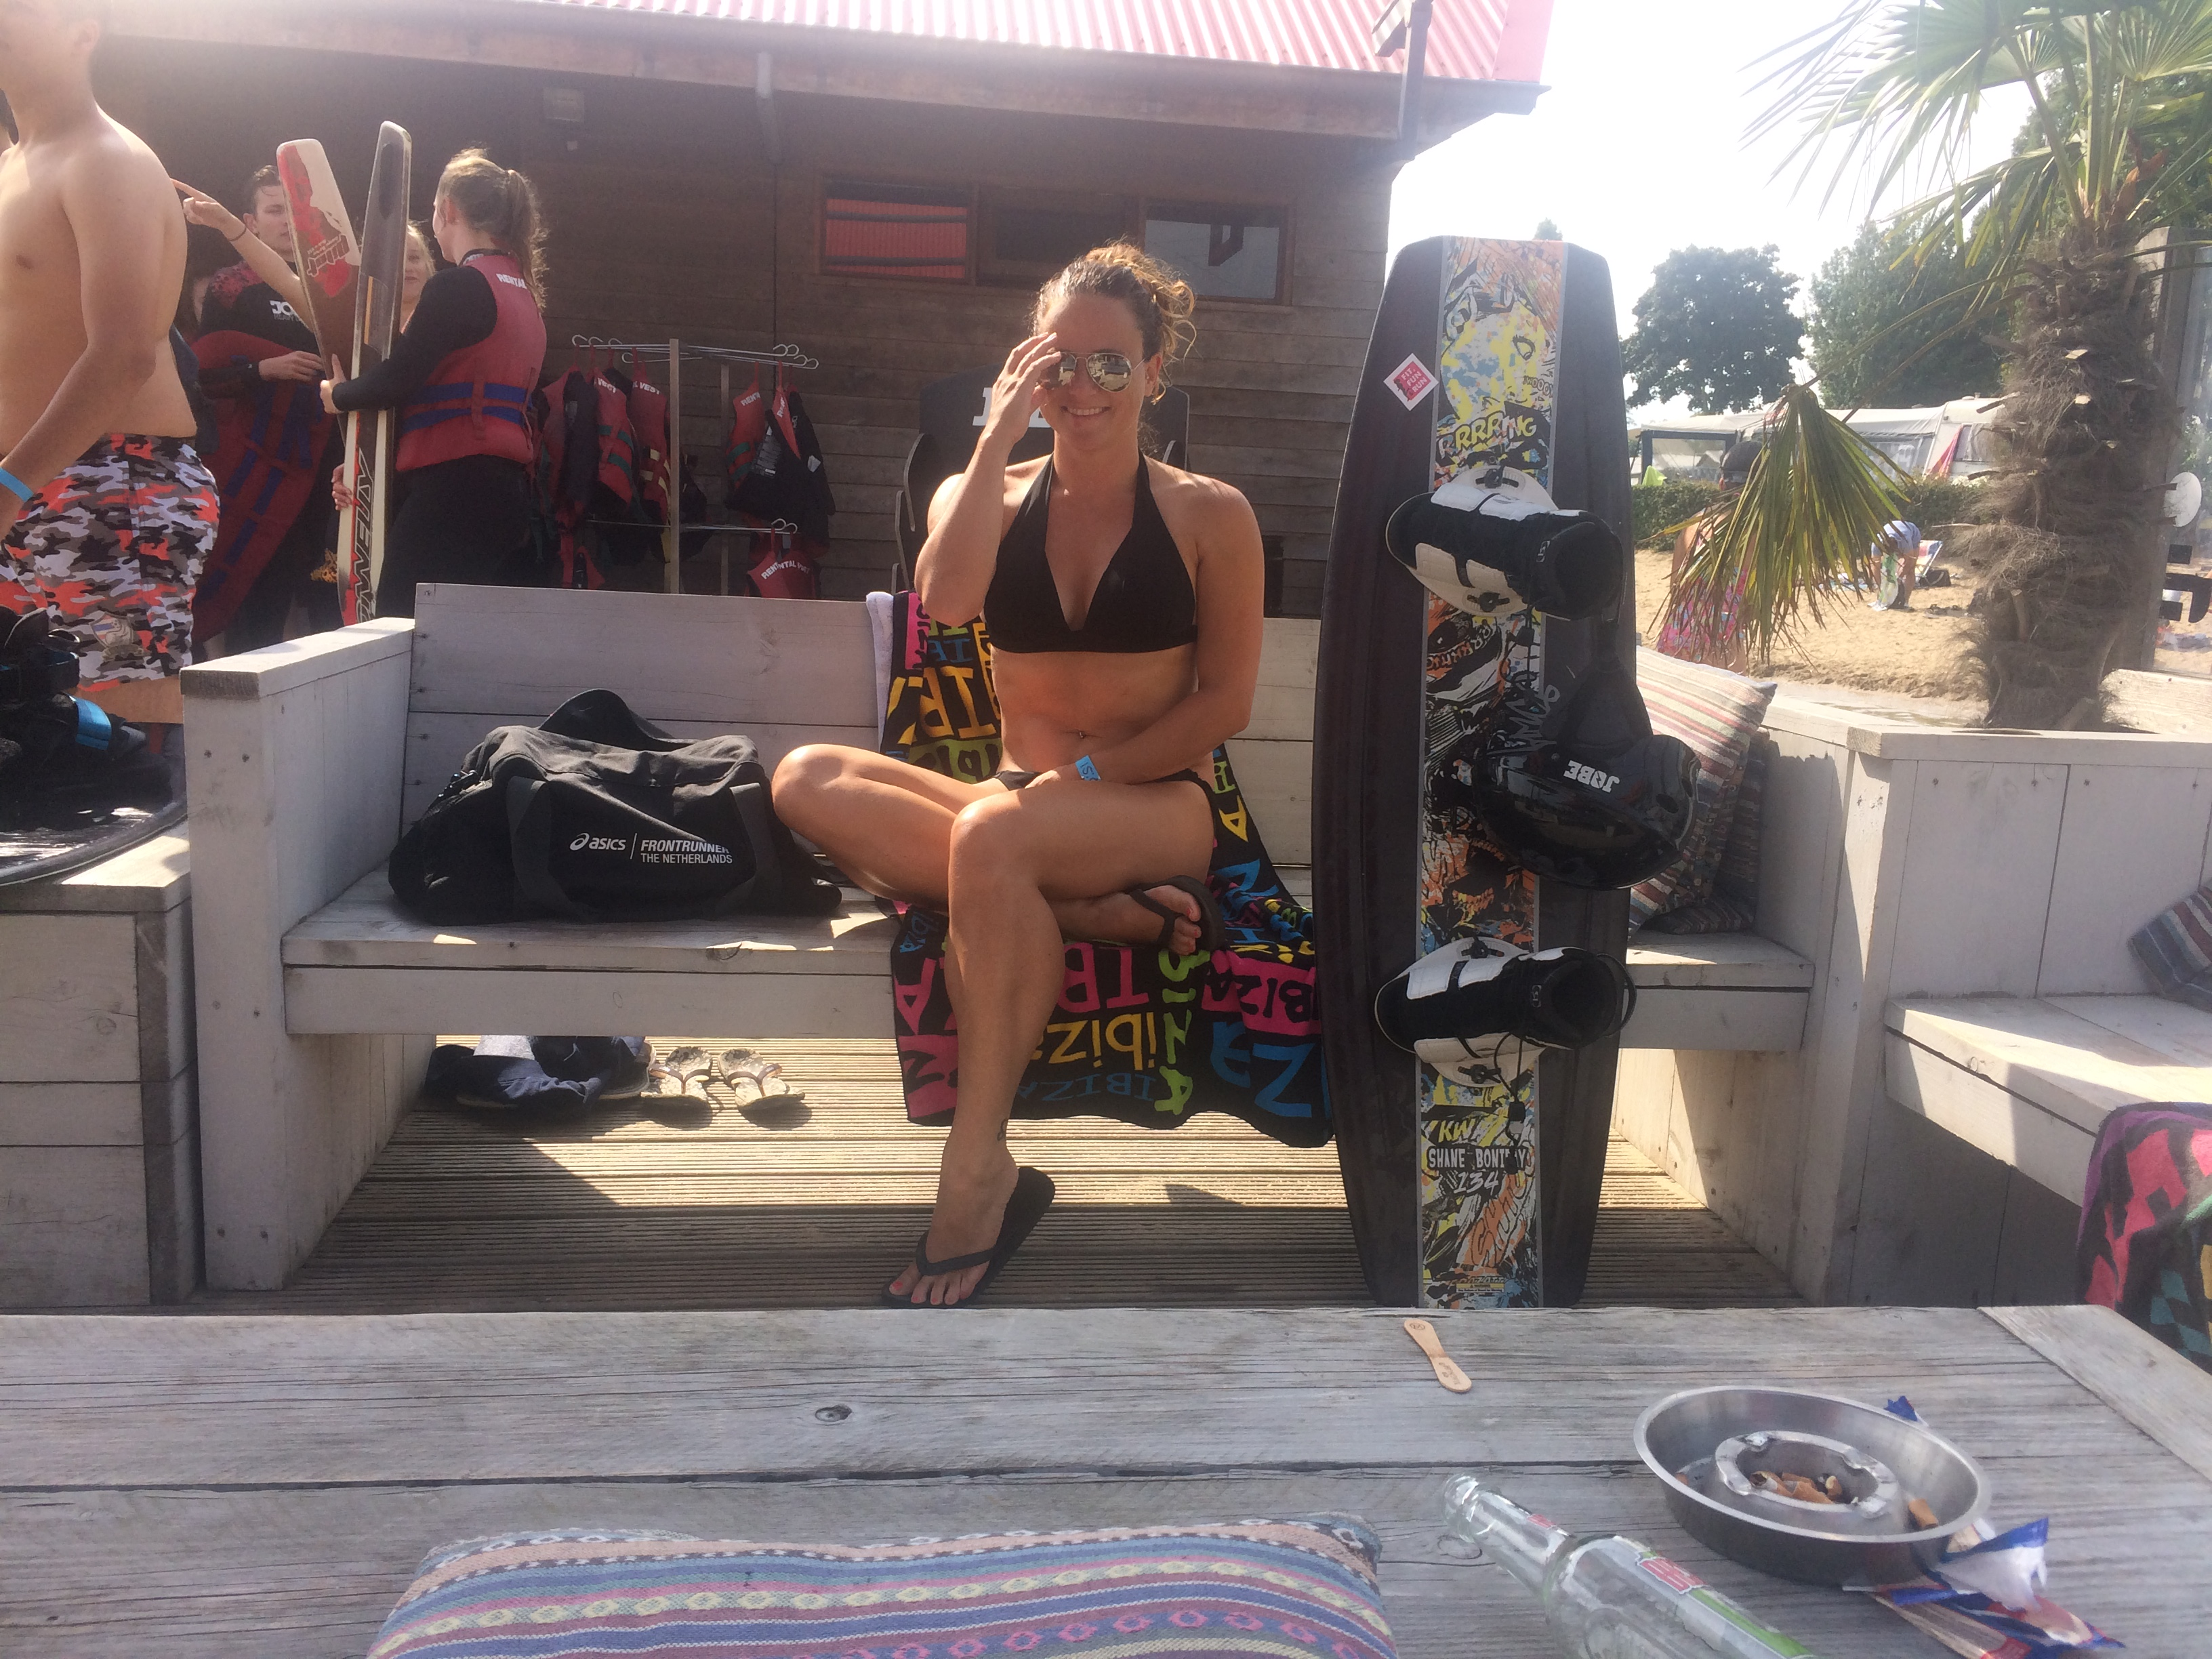 Wakeboarden. What to wear?